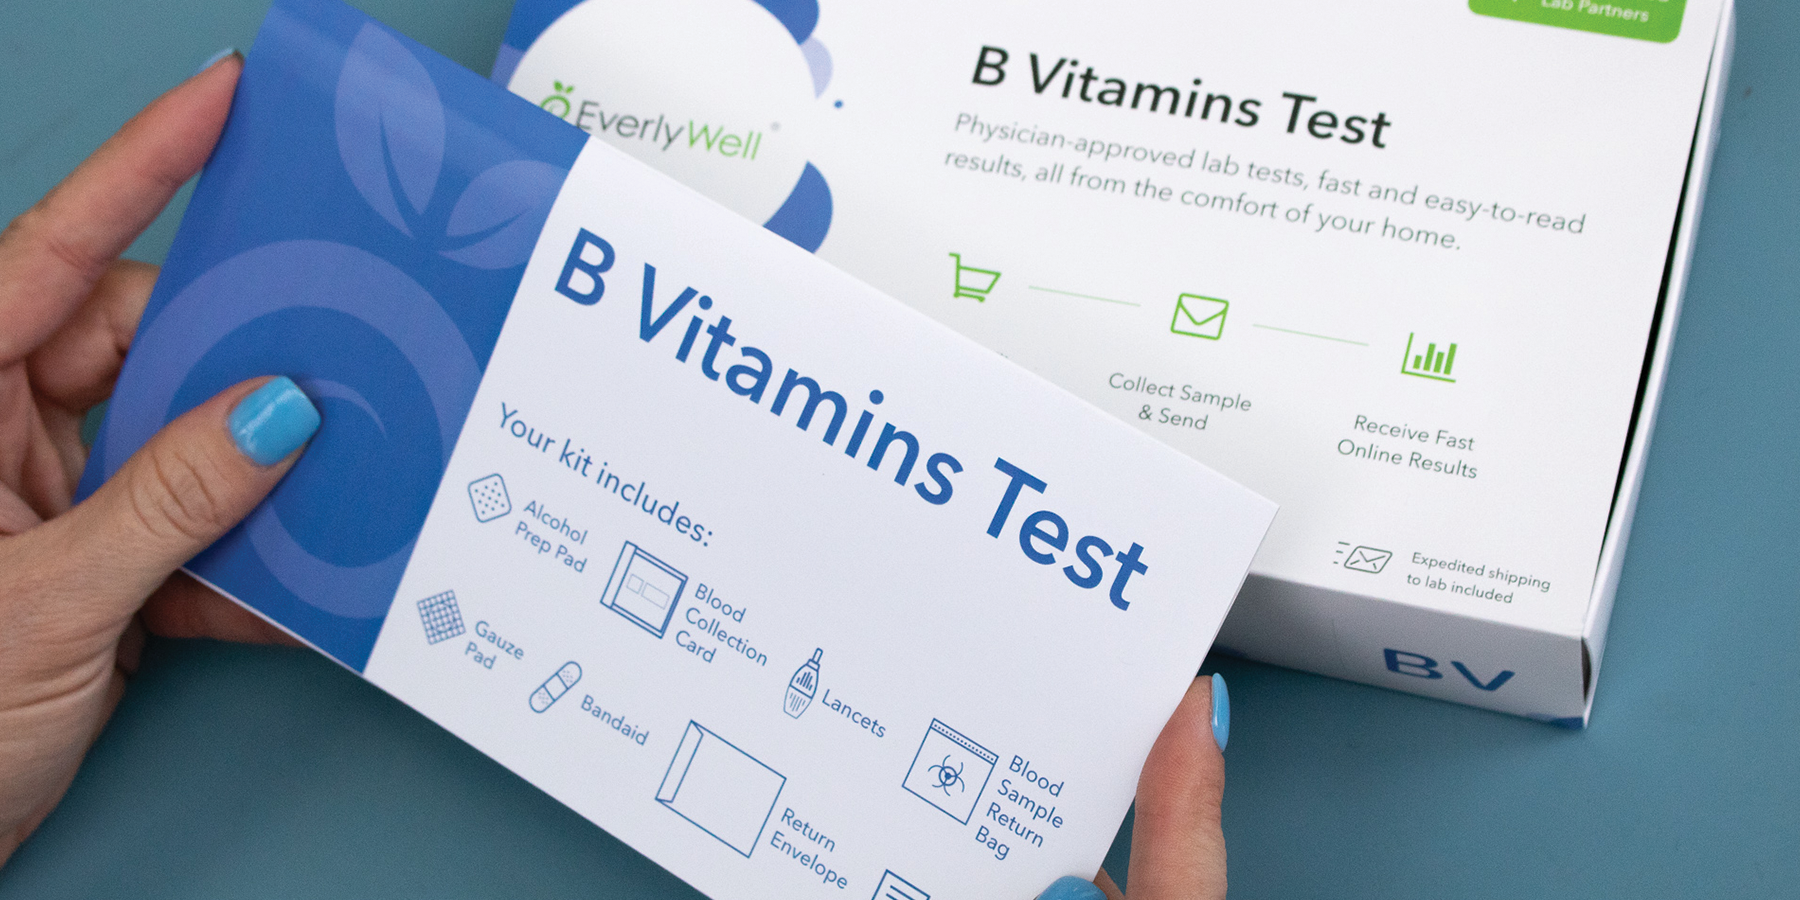 B Vitamins: Causes and Symptoms of Deficiency - EverlyWell